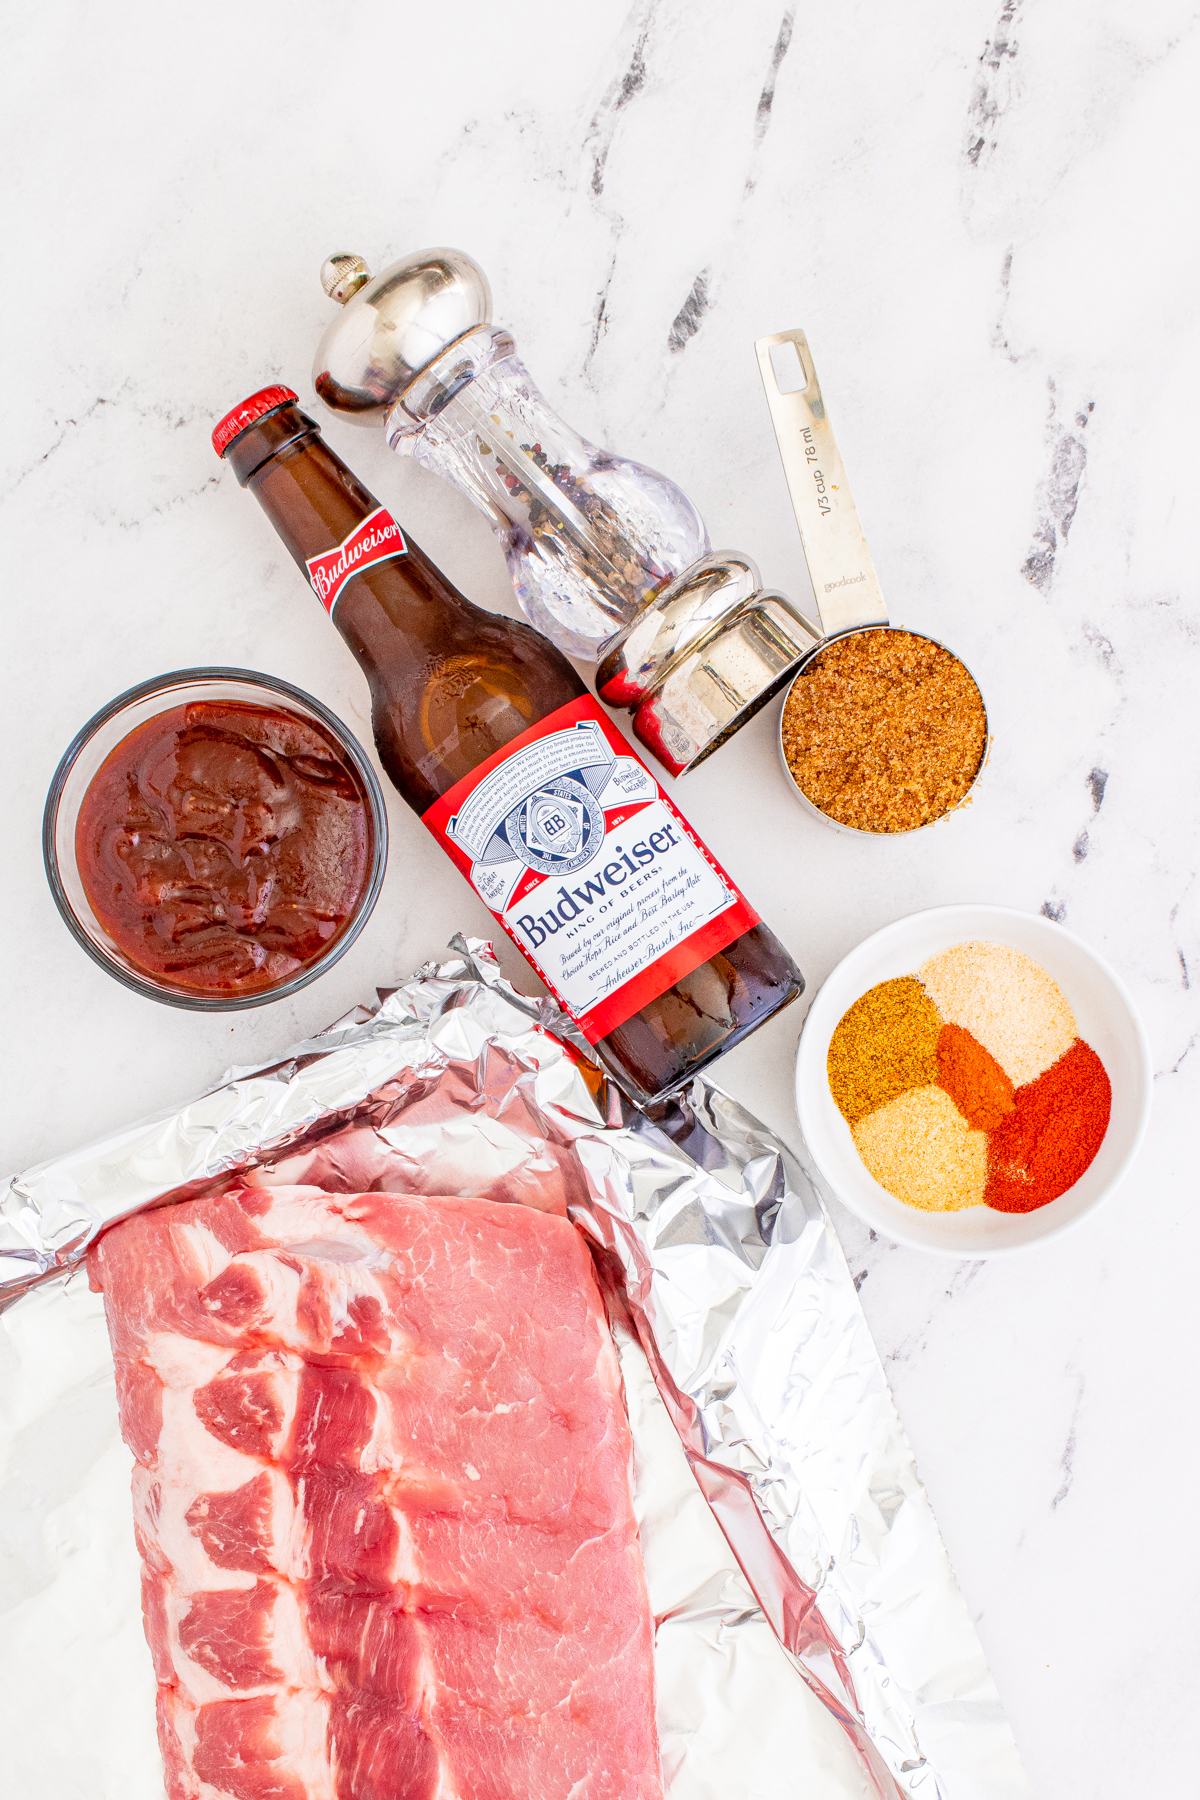 Ingredients needed to make this BBQ Rib Recipe